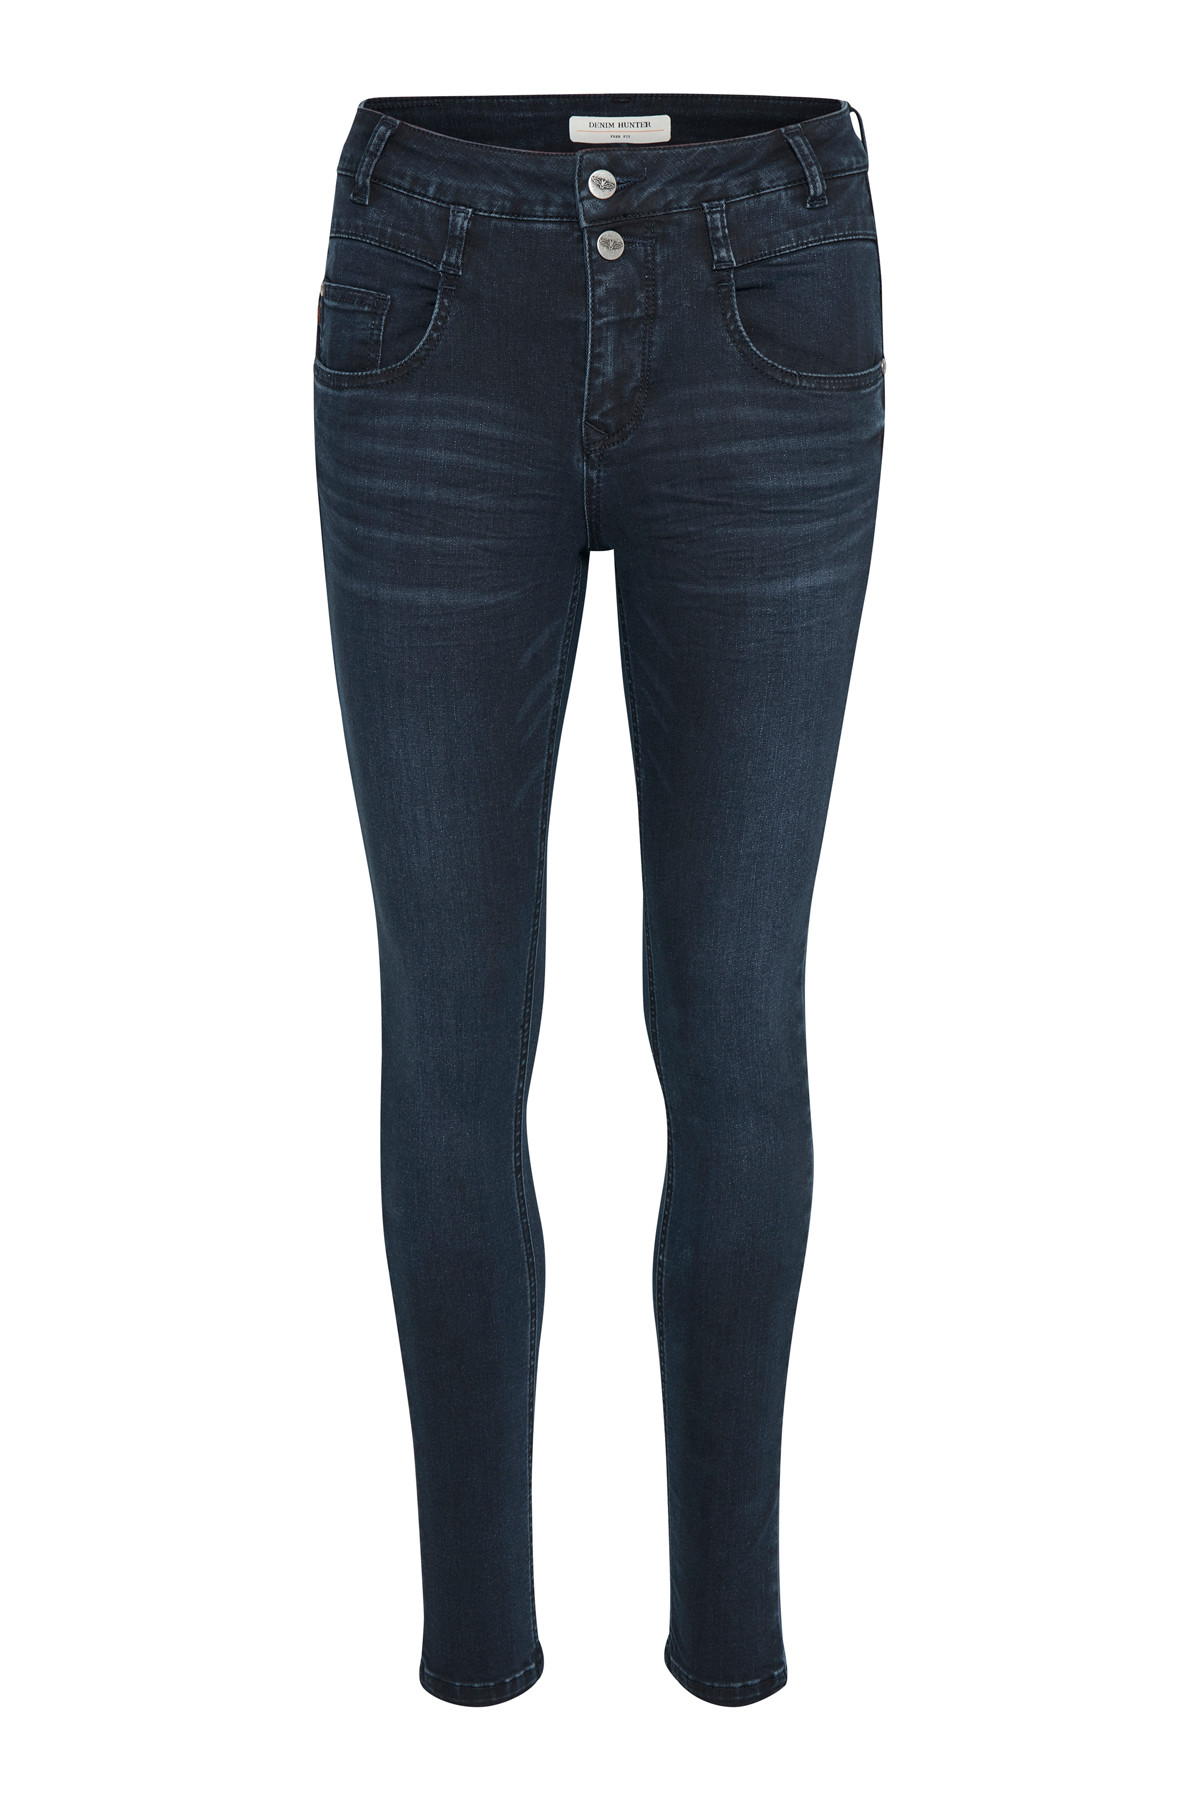 Image of   Denim Hunter FIOLA FREE JEANS 10701295 D (Dark Denim 38002, 33)